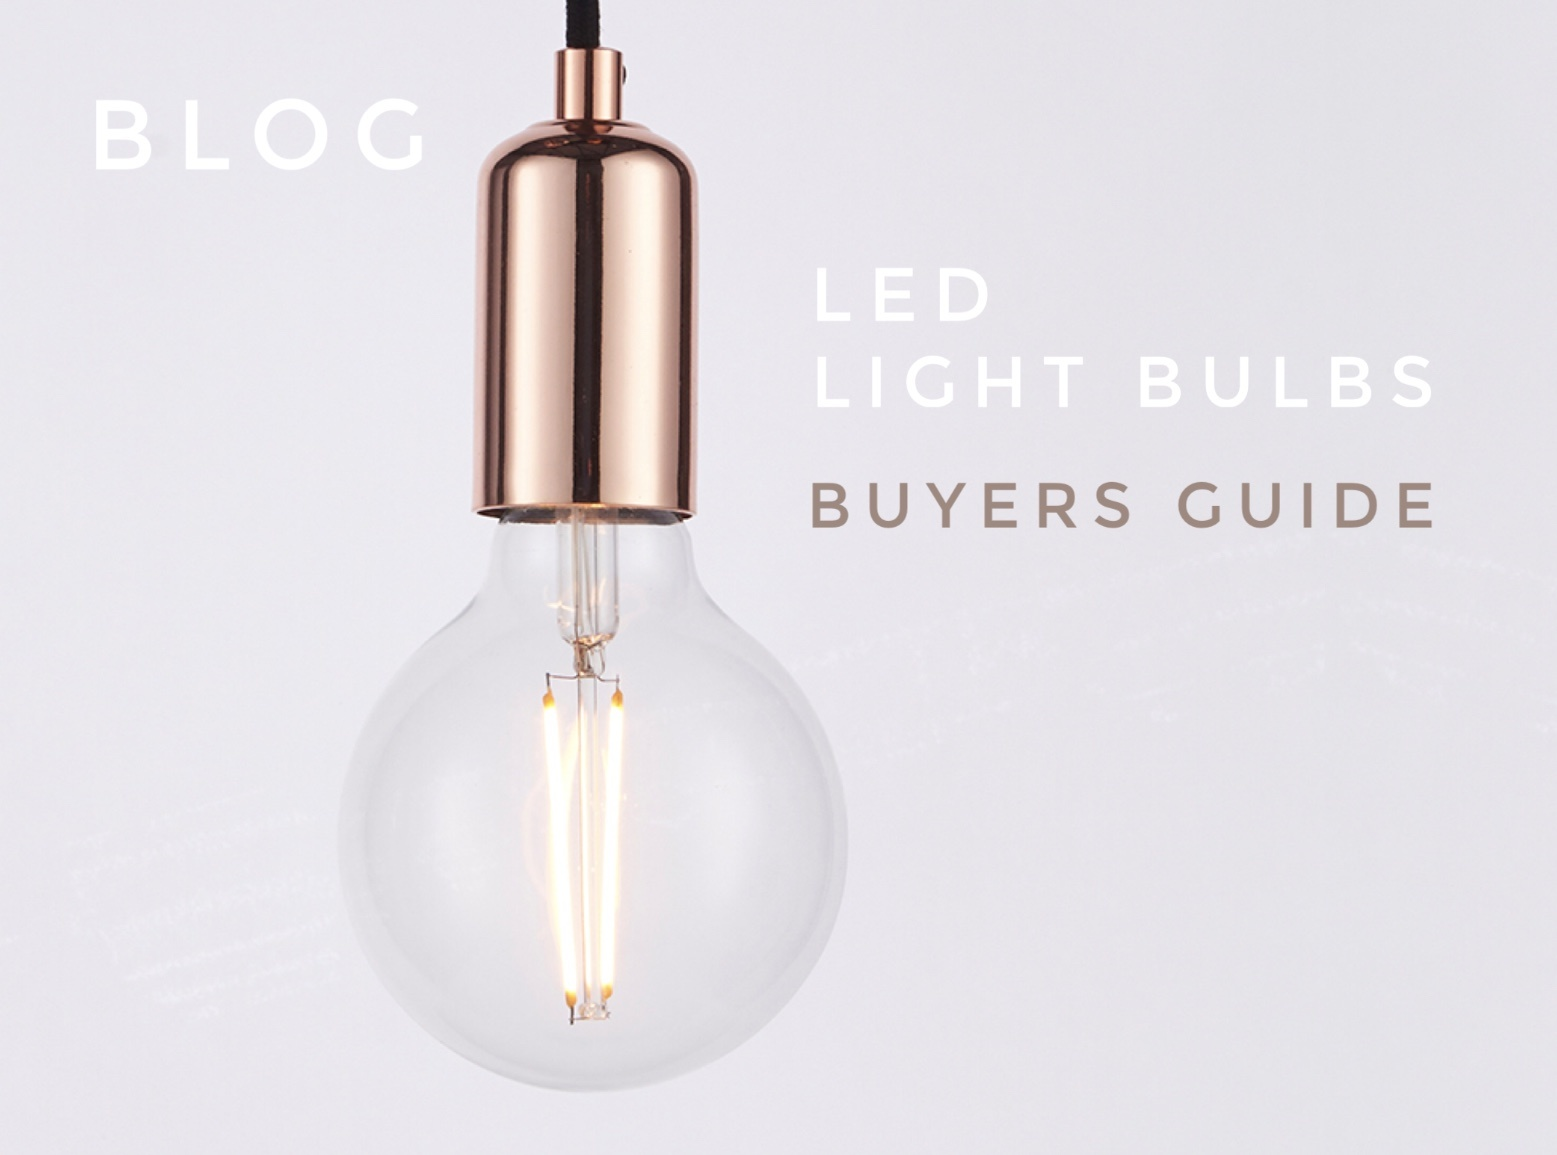 LED Light Bulb Guide - How to choose the right LED colour and wattage for your home